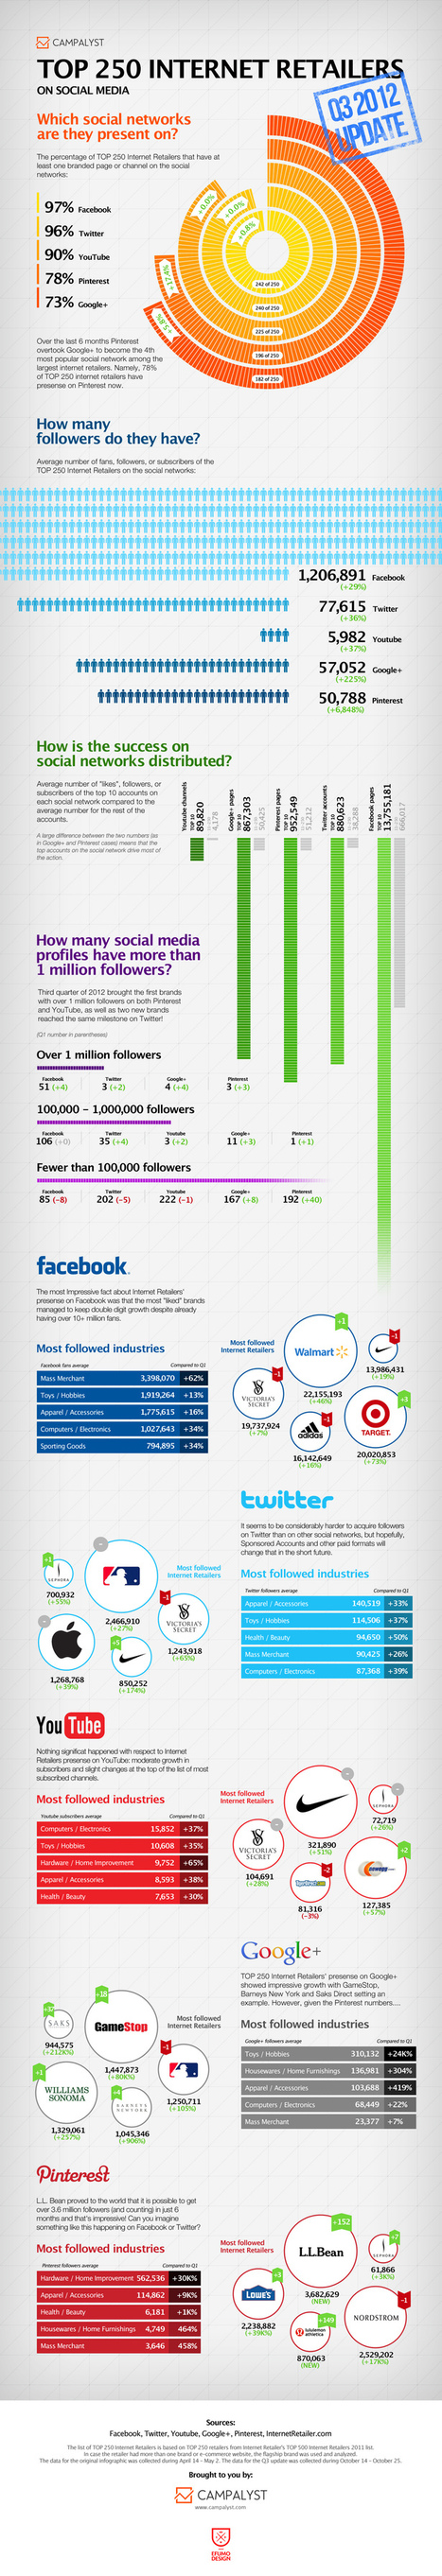 Top 250 retailers on social media Q3 2012 update (Infographic) | sociallyawesome | Scoop.it